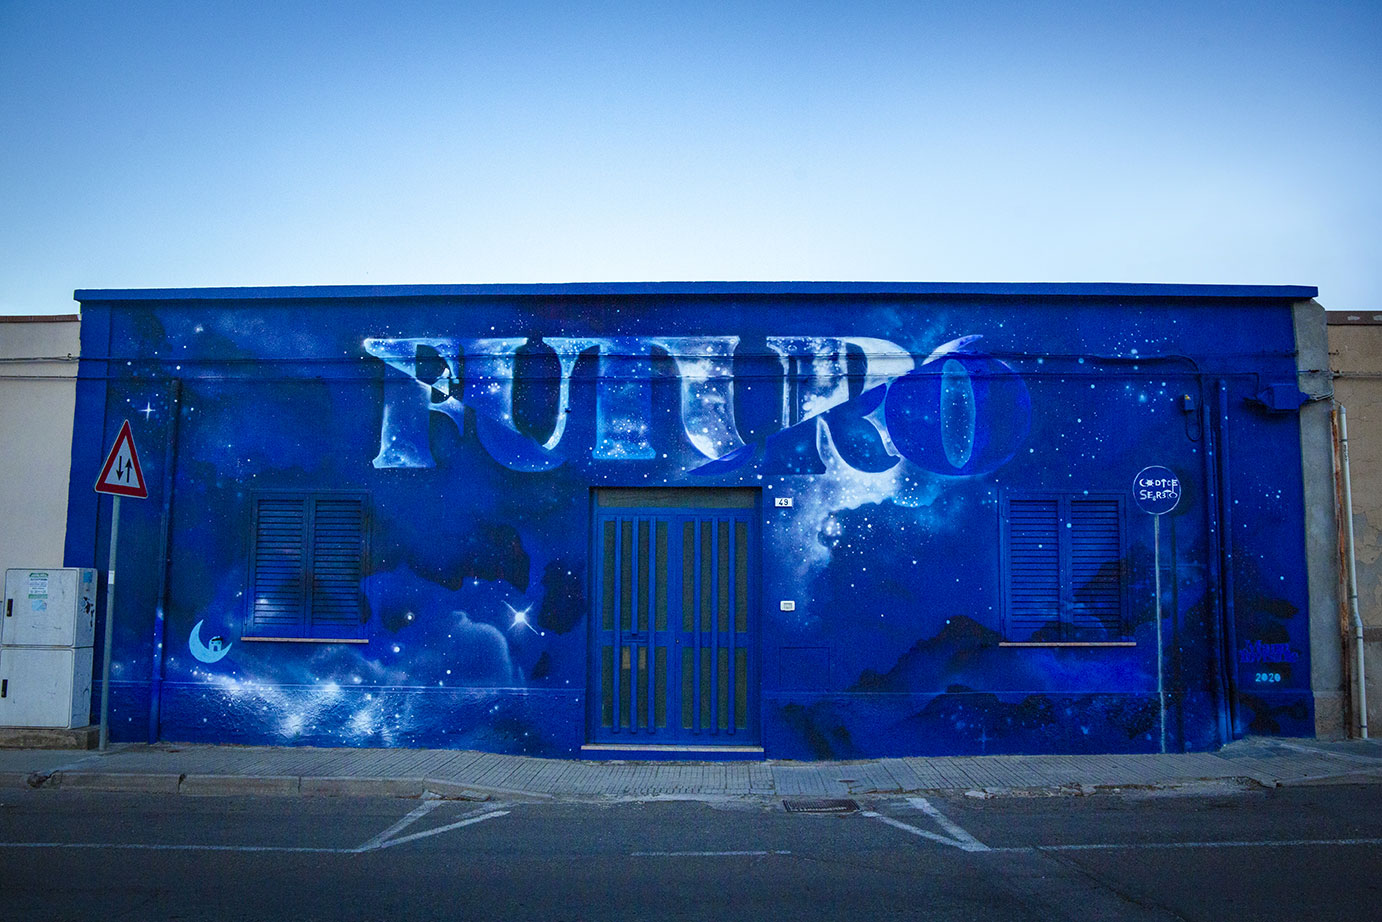 ''Futuro'' Spray and quartz paint on wall 12 x 4 m Casa Futuro S.Teresa Pirri 2020